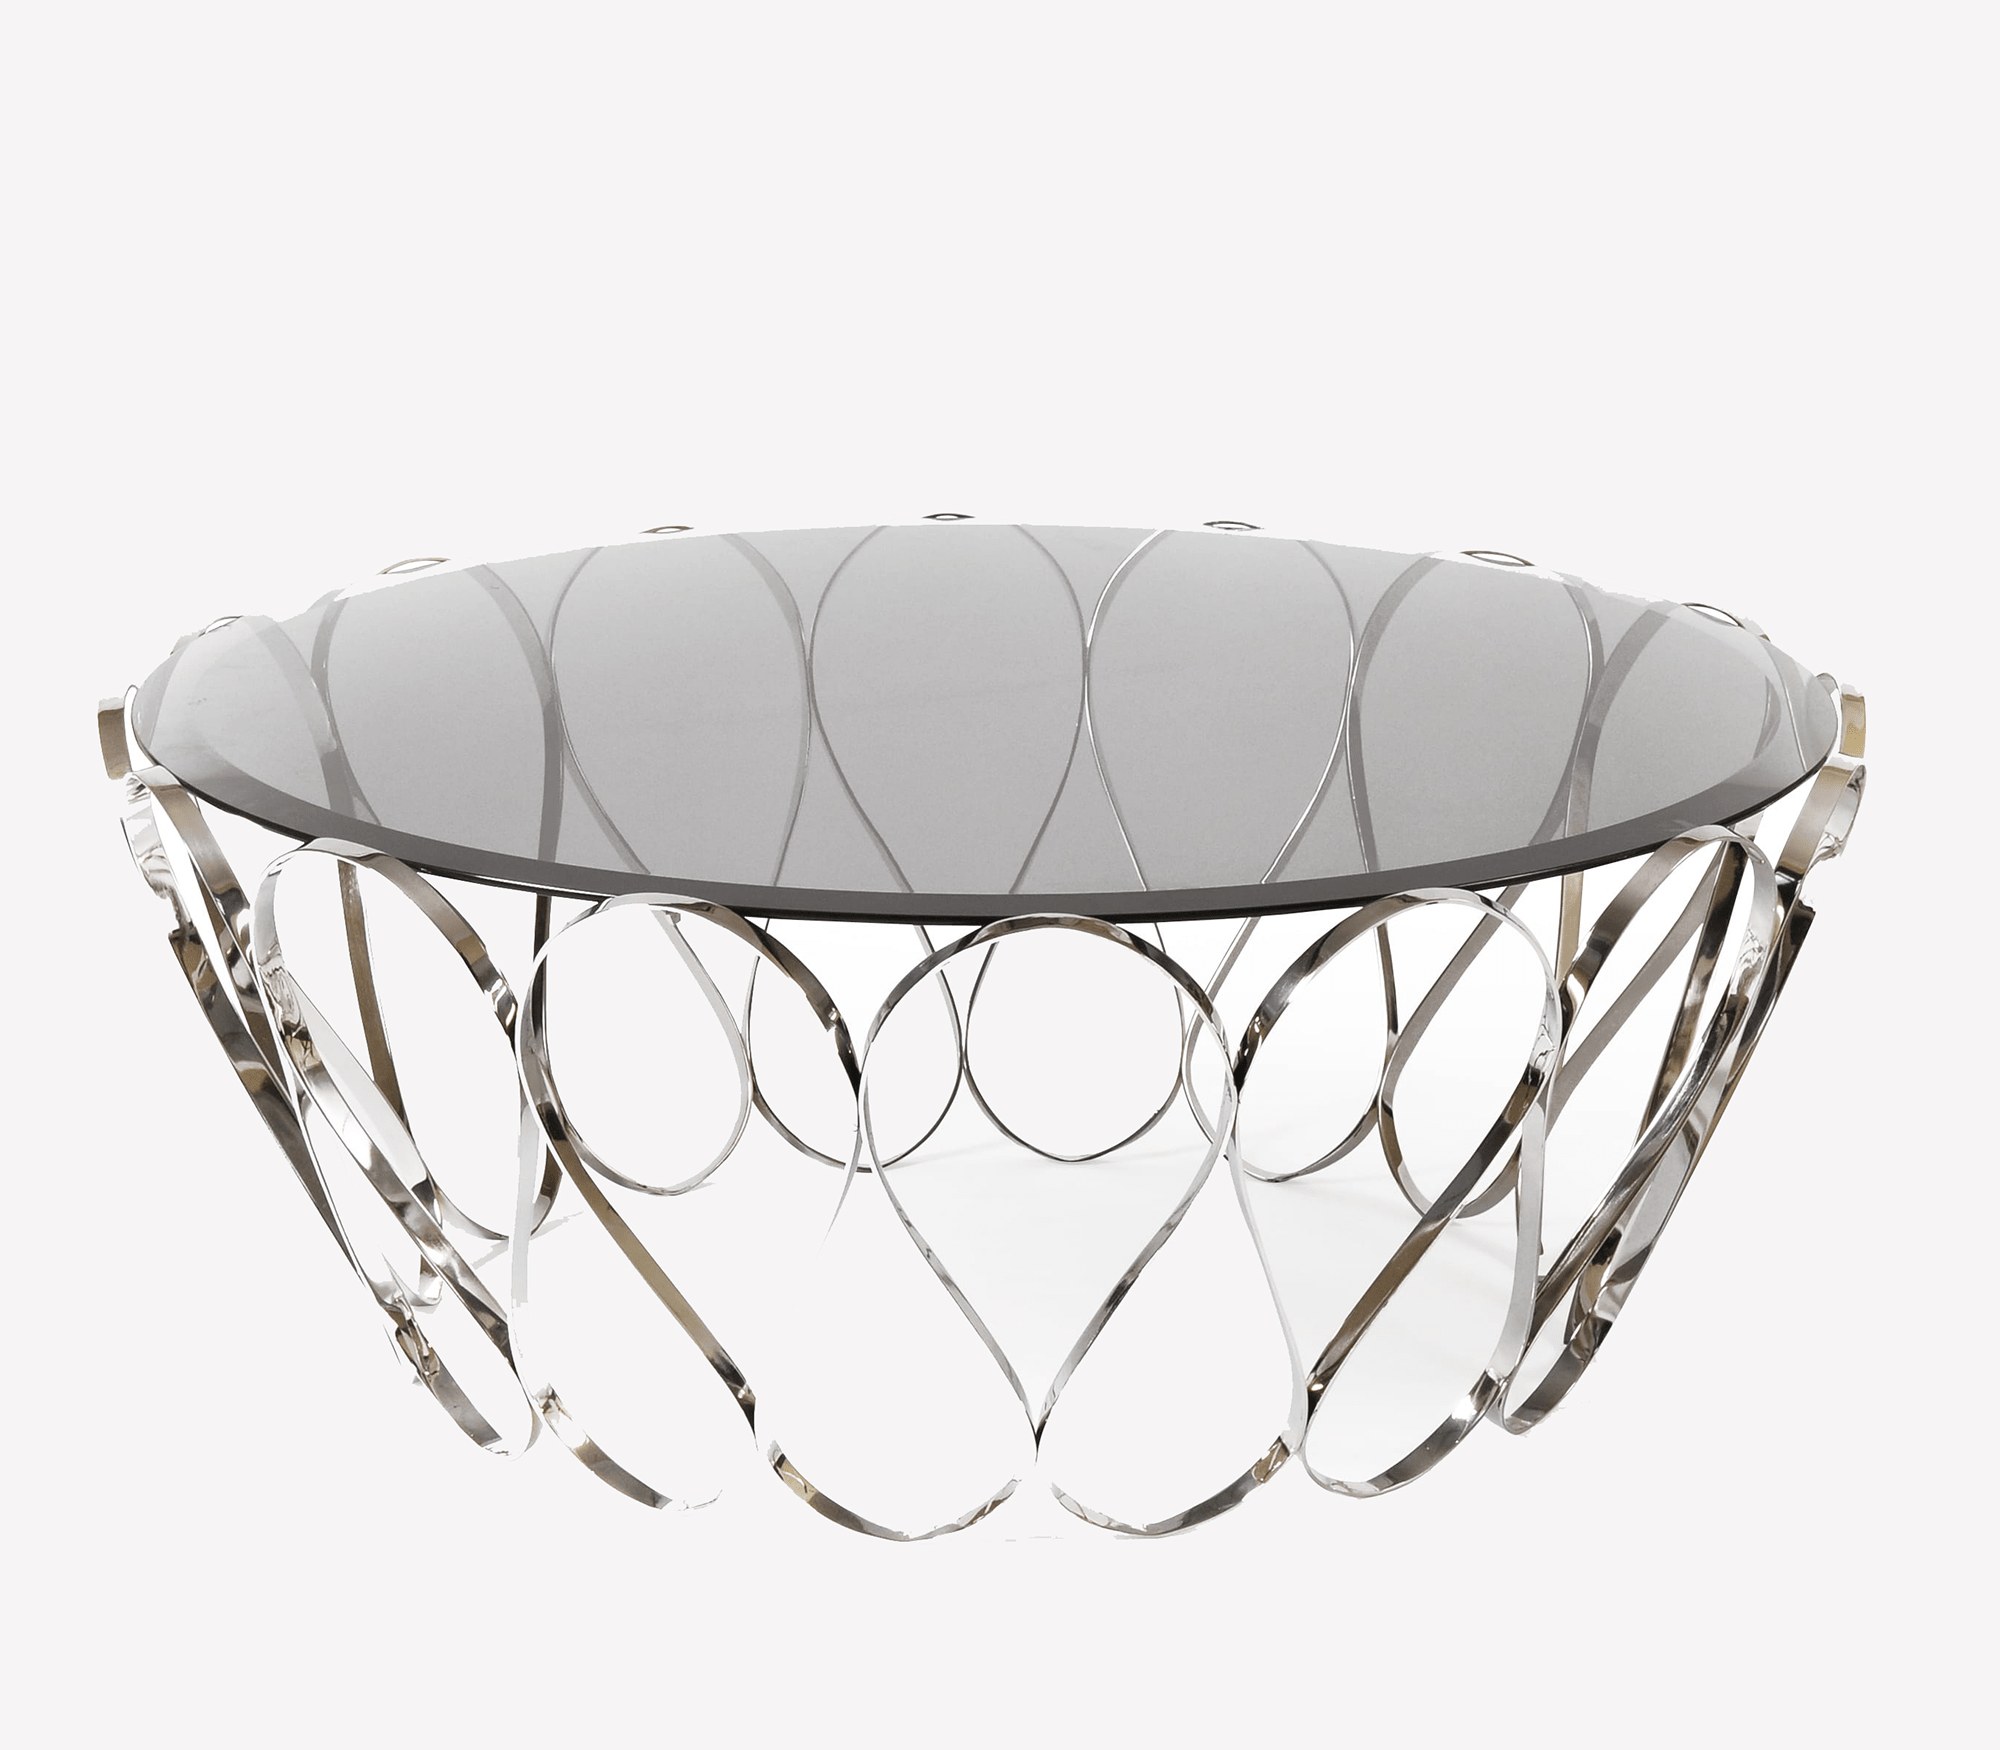 Aquarius Center Table by Boca do Lobo